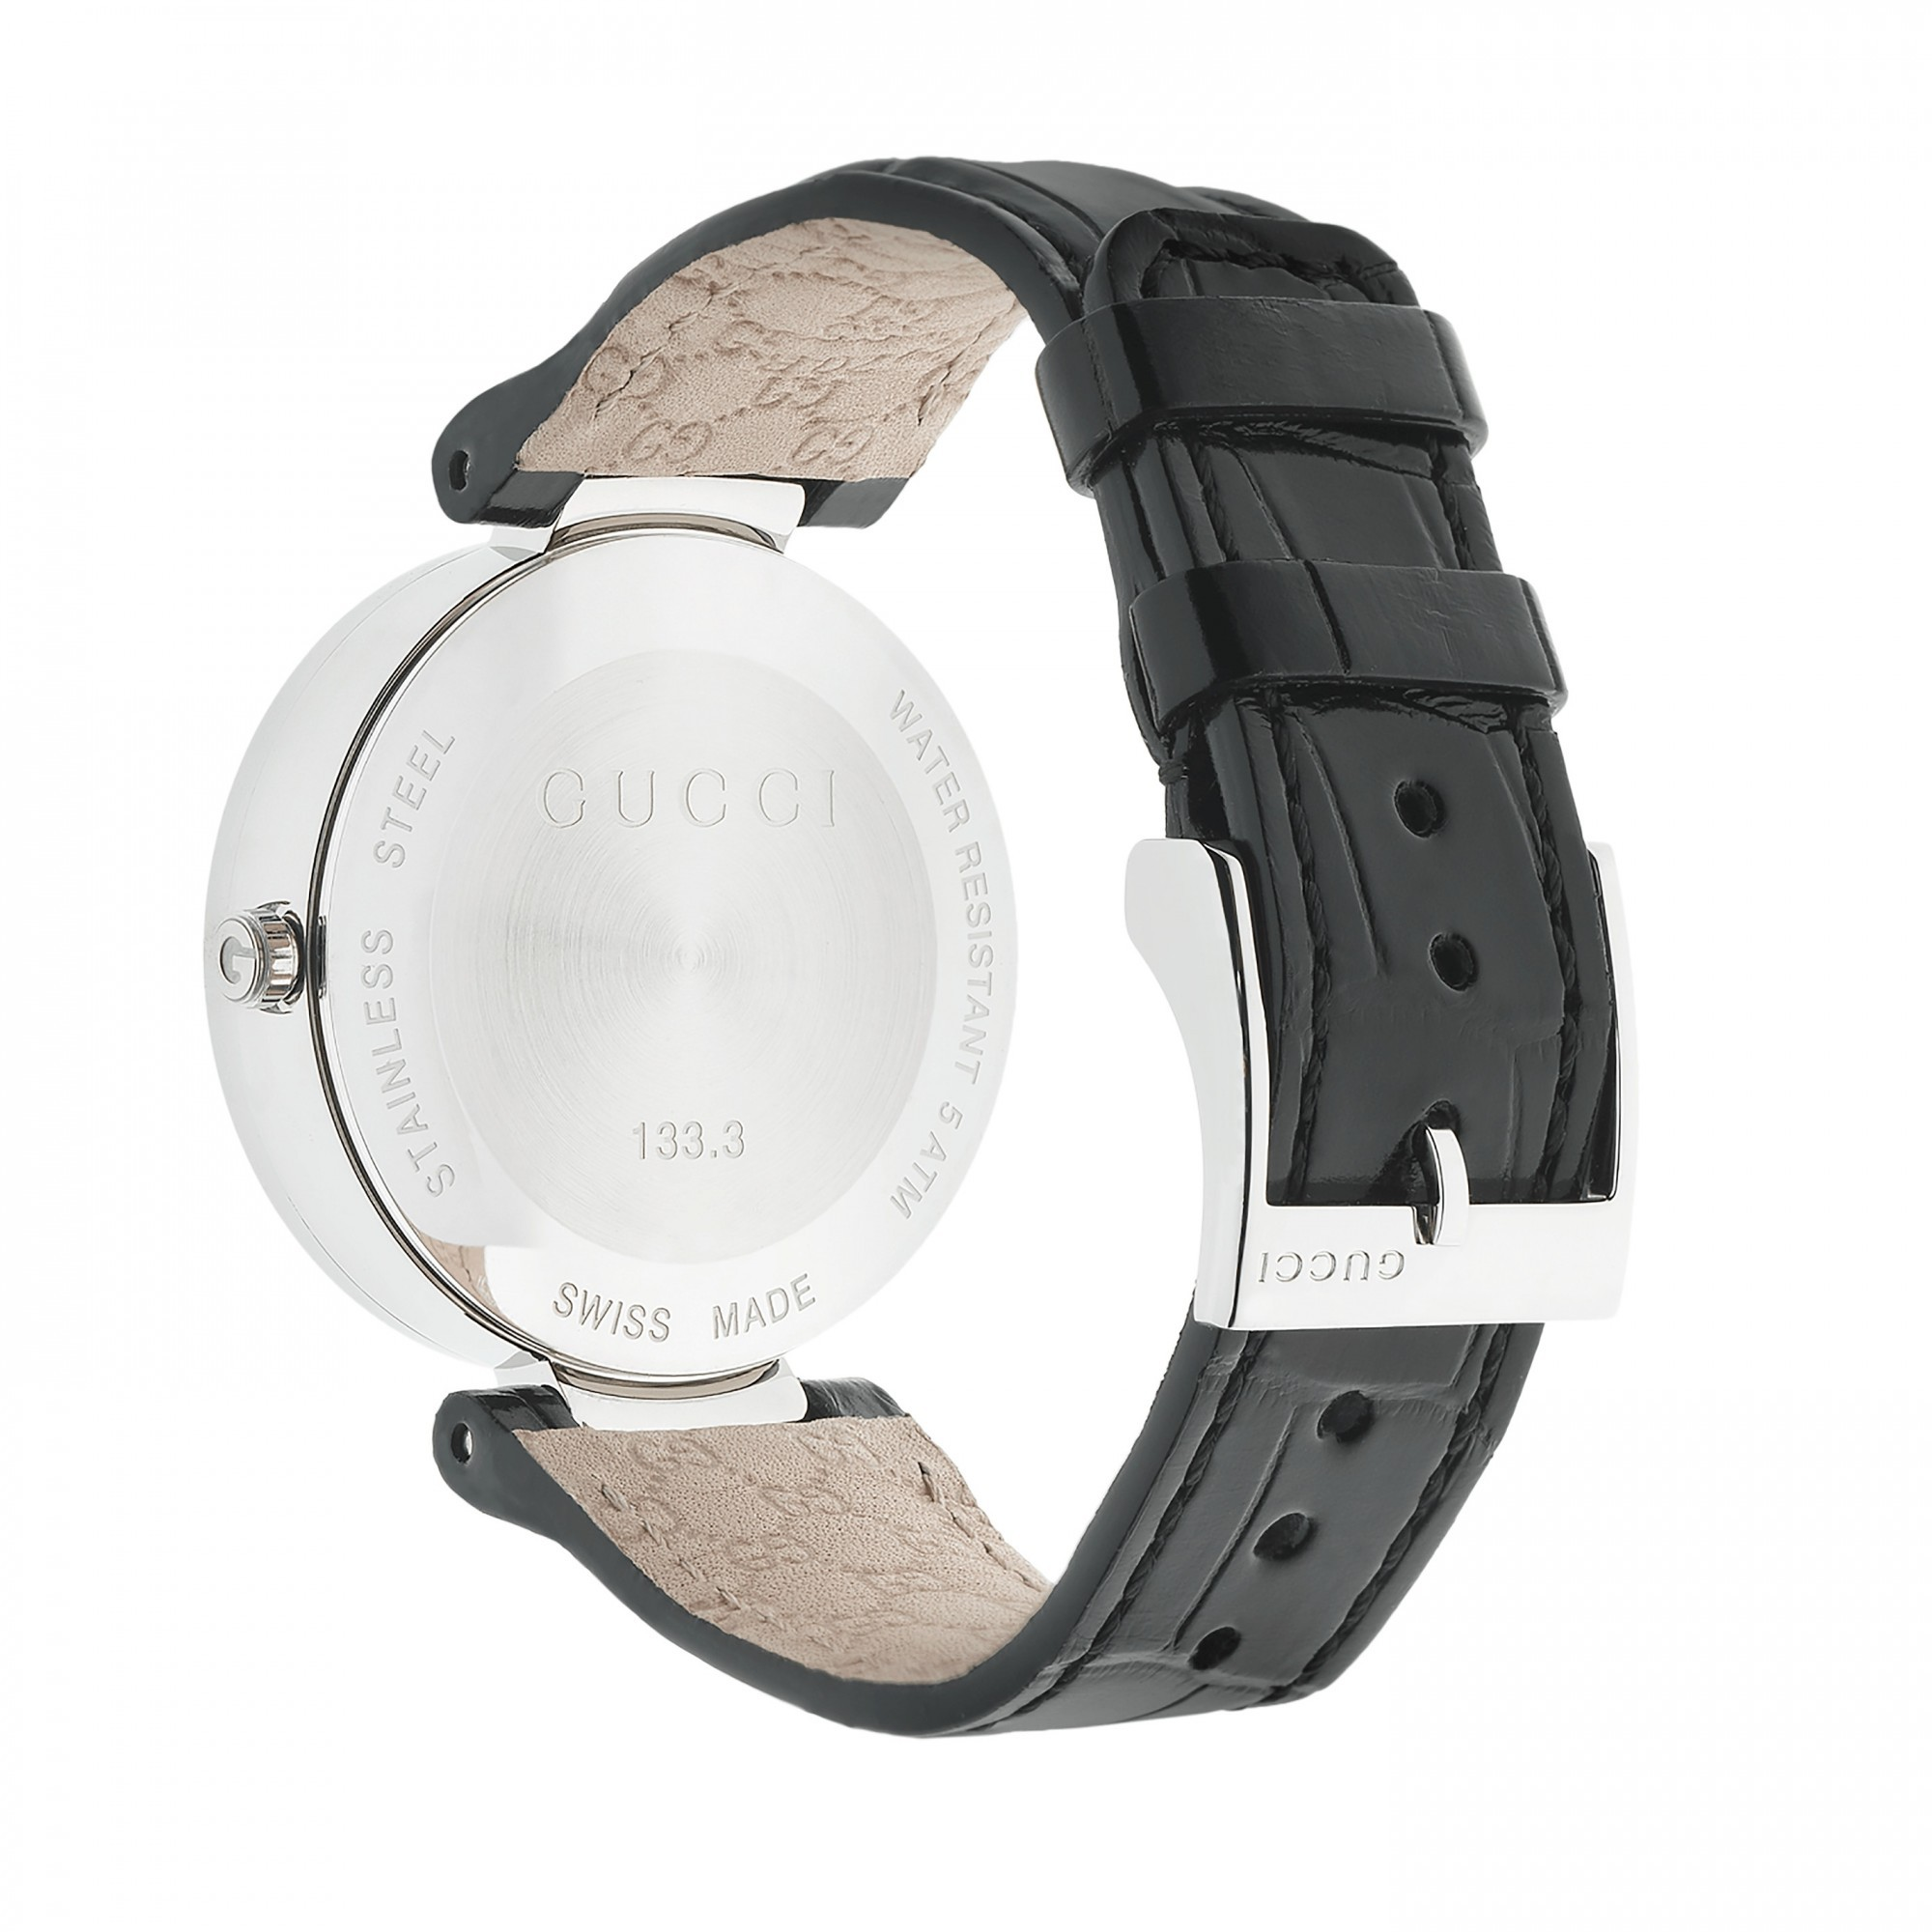 a4925f7f789 Gucci YA133306 Interlocking-G Diamond Set Leather Band Women s Watch.  previous image next image. previous image next image. previous image next  image